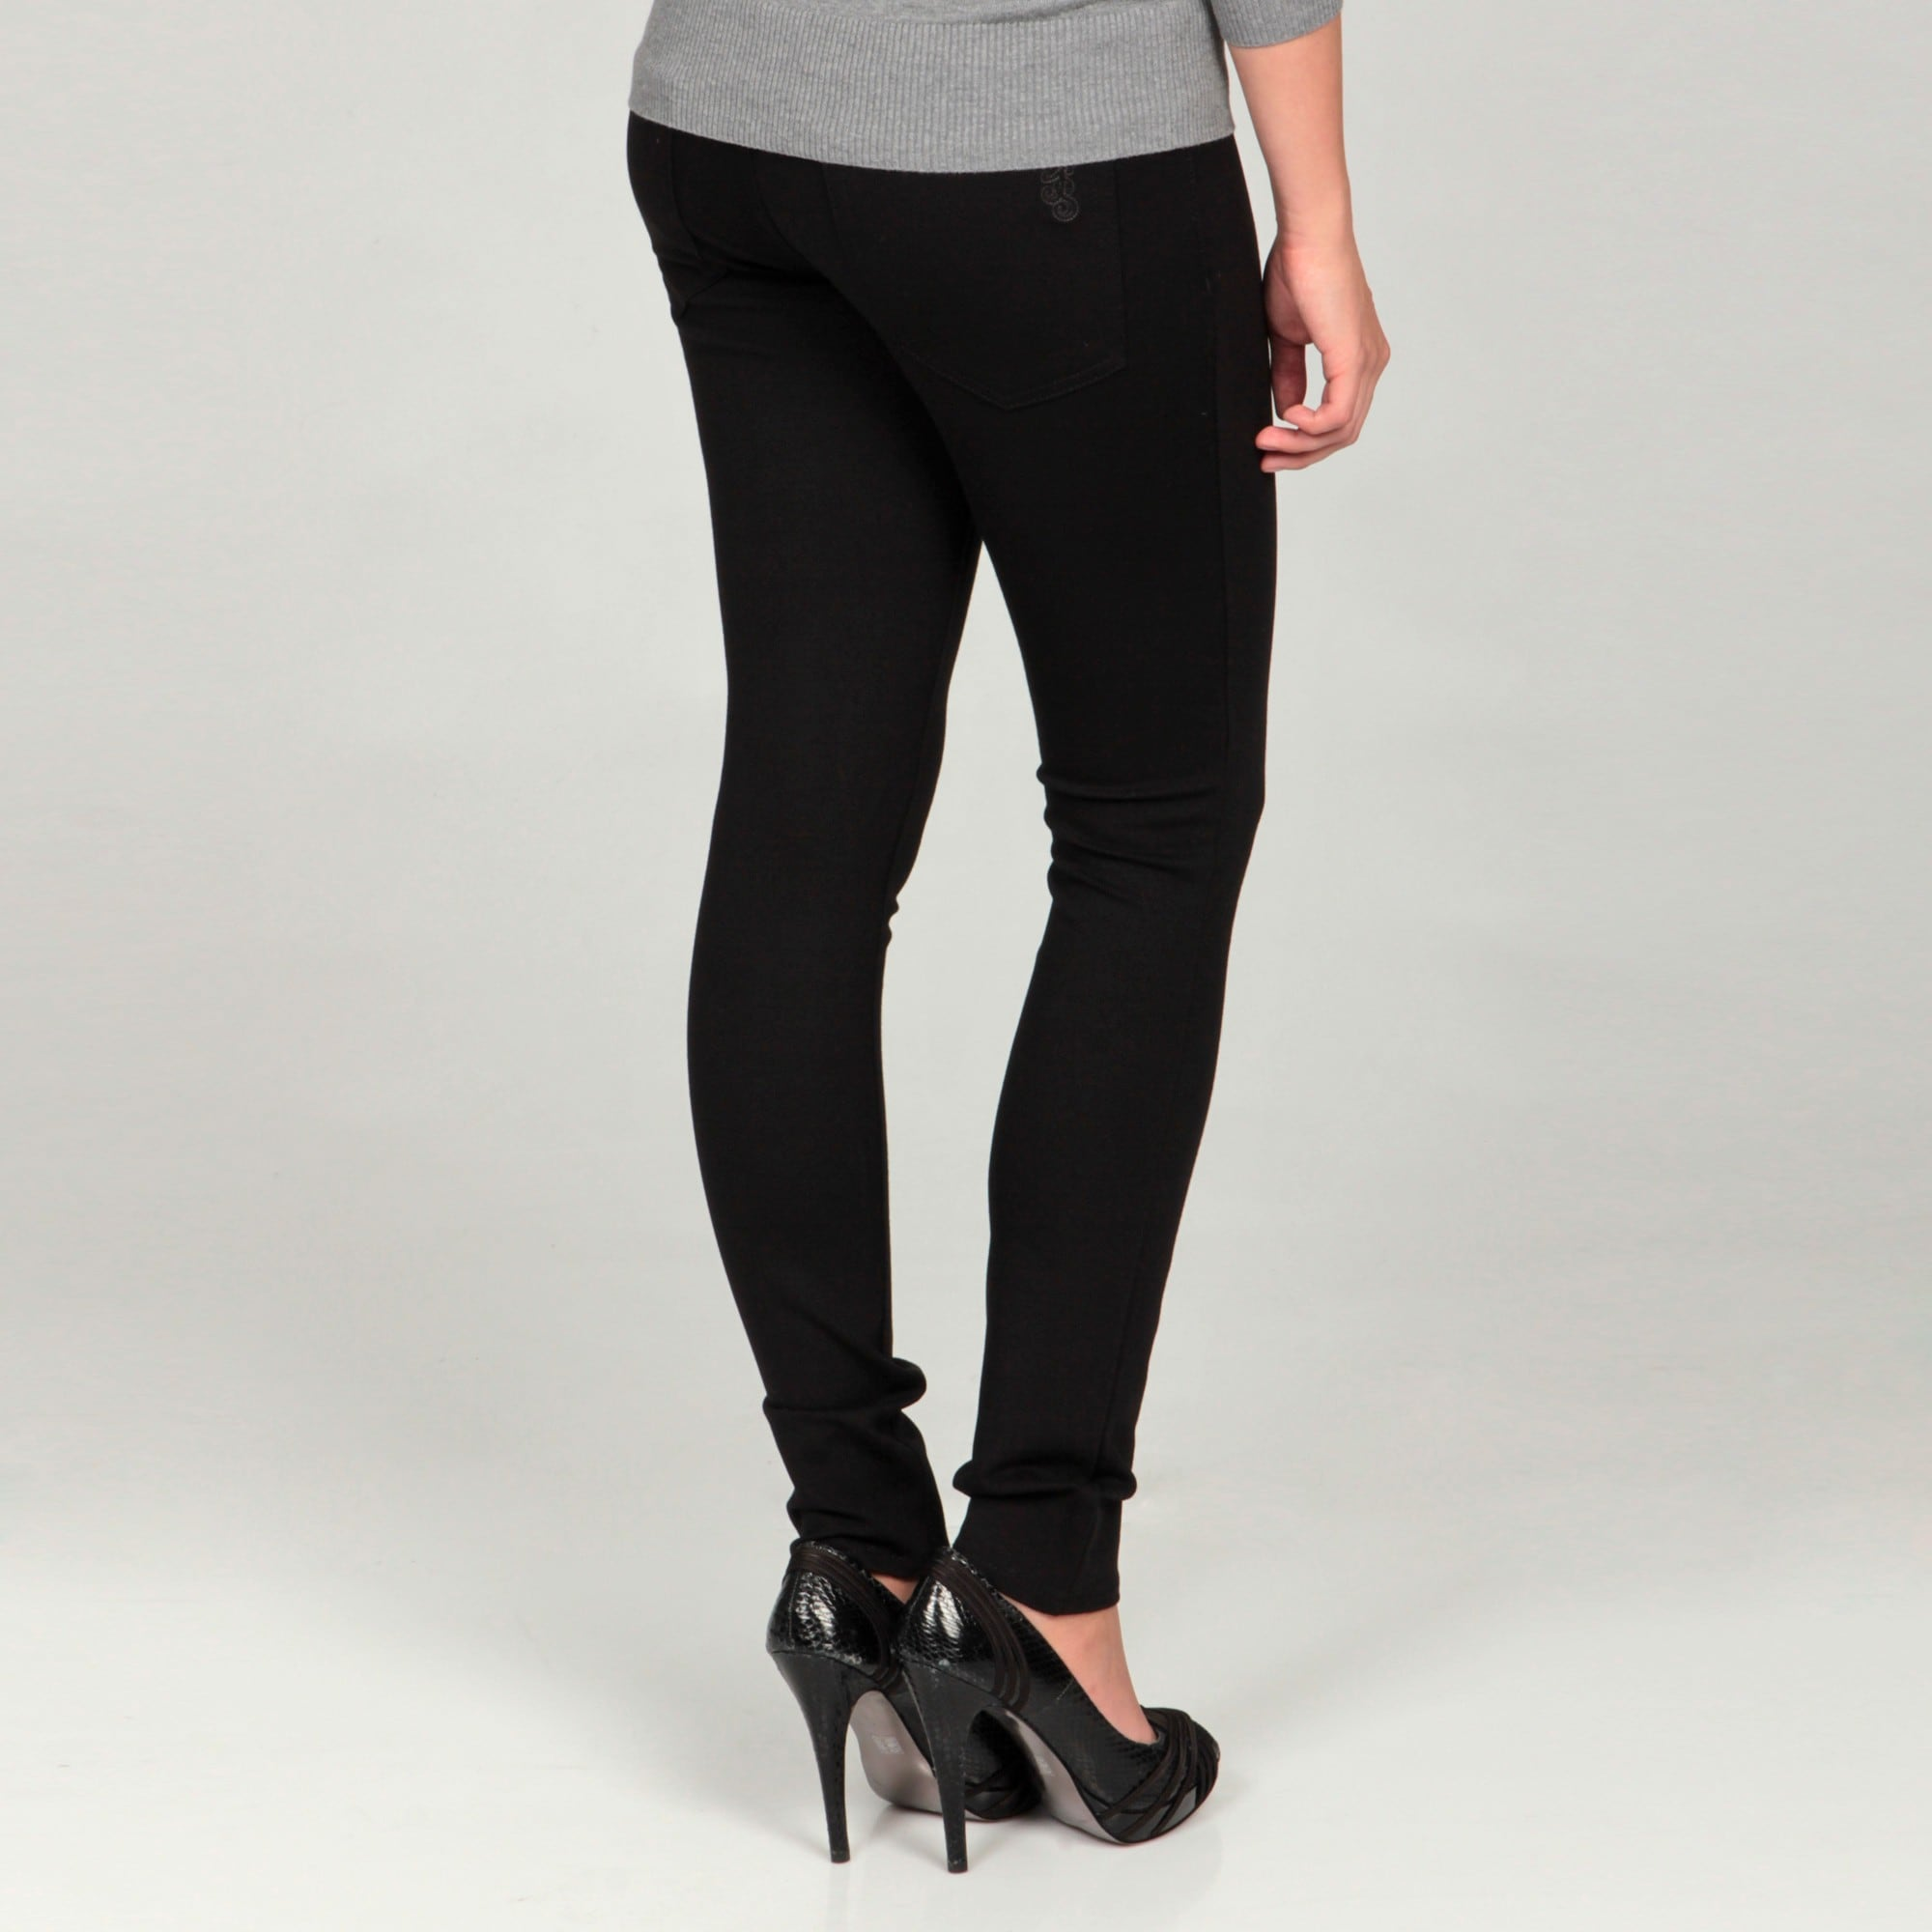 c763700e635c2 Shop Jessica Simpson Junior's Ponte Kiss Me Jeggings - Free Shipping On  Orders Over $45 - Overstock - 6403070